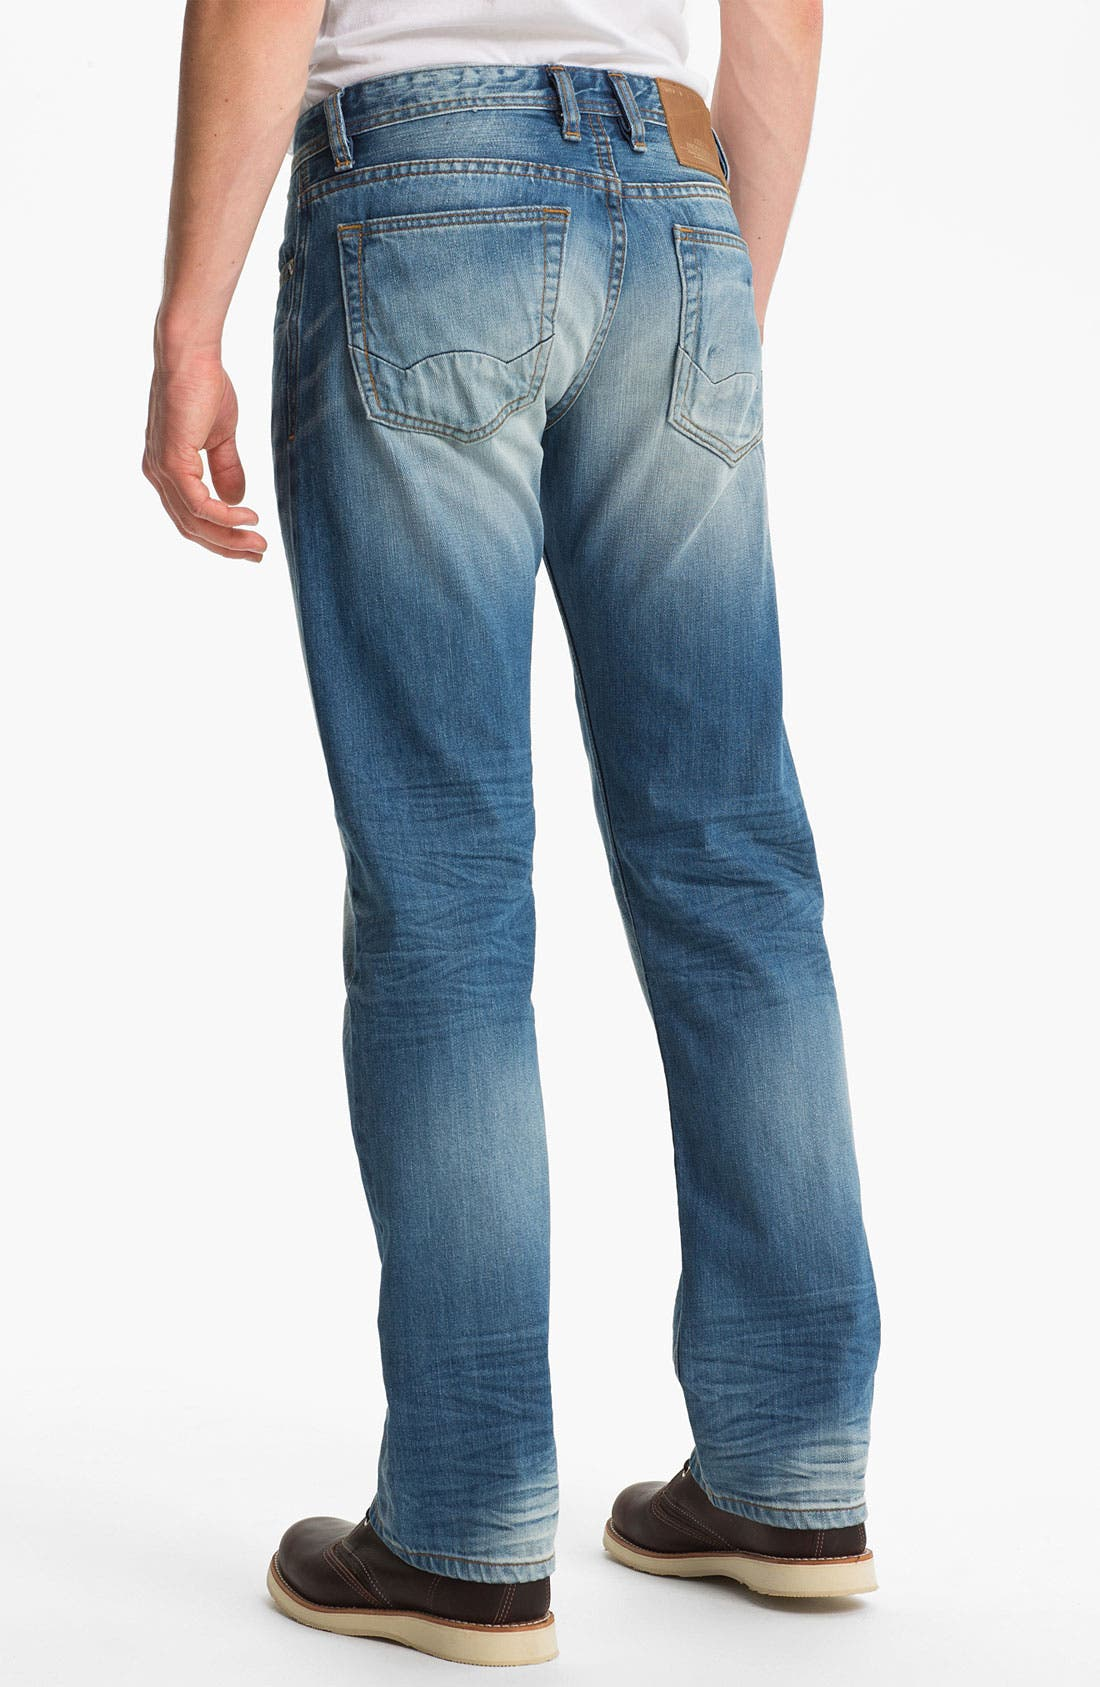 Alternate Image 1 Selected - Cult of Individuality 'Rebel' Straight Leg Selvedge Jeans (Crafted)